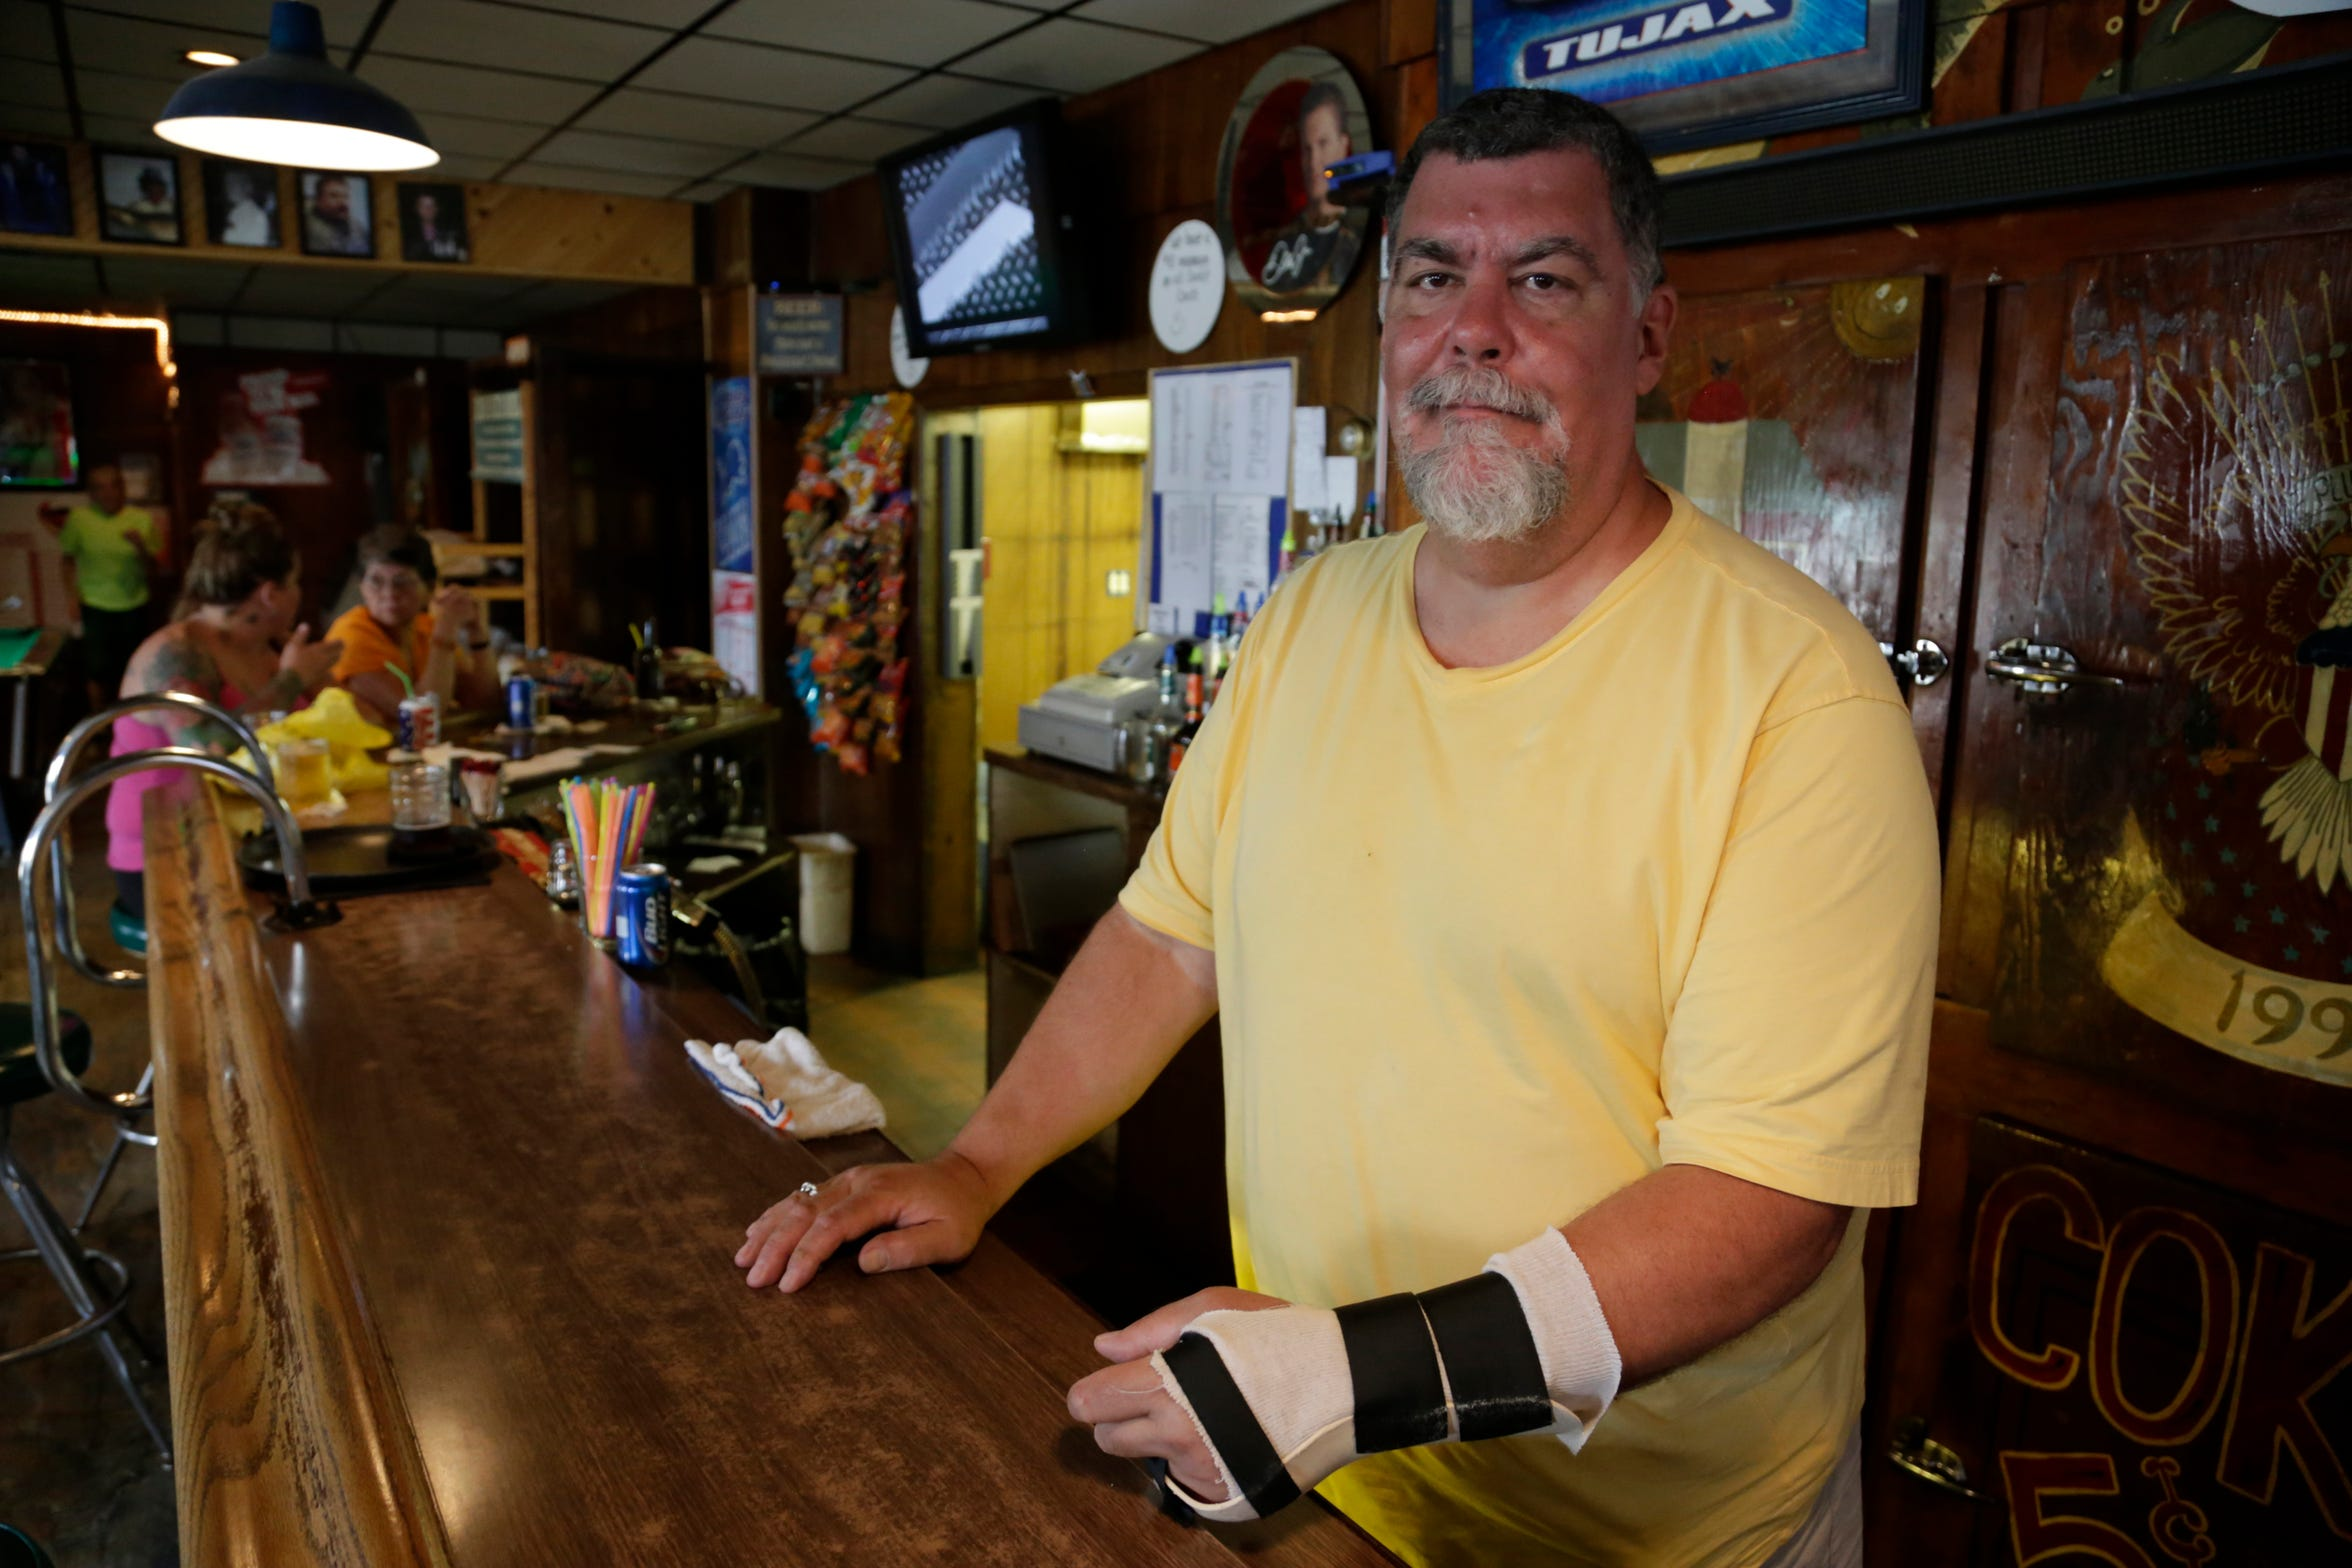 Jack Nadwornik owner of Tujax Tavern in Delton poses at his bar Wednesday June 25, 2014. Nadwornik had been celebrating his birthday when he was arrested by police in the parking lot of his bar. Police broke Nadwornik's hand, kneed him and bloodied his knees. Two of the three officers who arrested him were unpaid reserves. One of them was John Raterink, who once ran an organization identified as a hate group by the Southern Poverty Law Center.